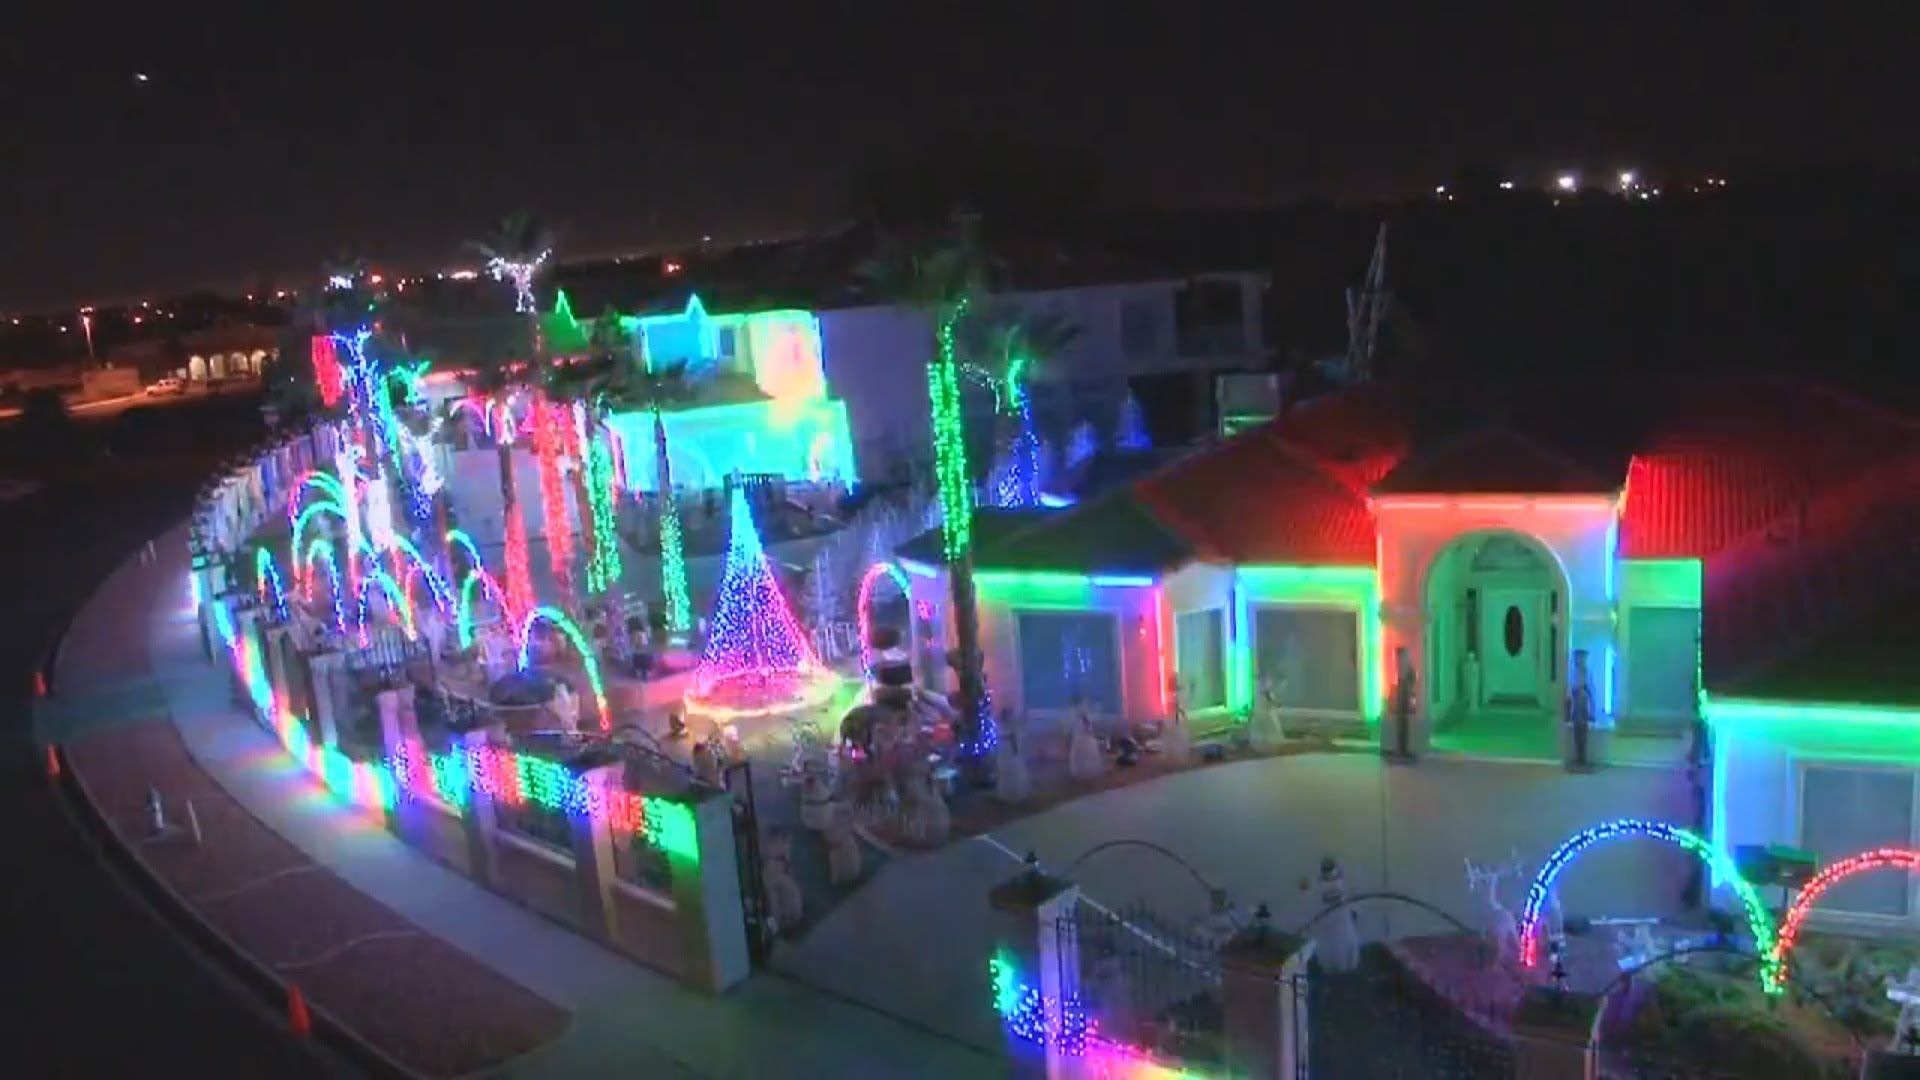 6 Of The Best Christmas Light Displays Ever!!! 4 Different